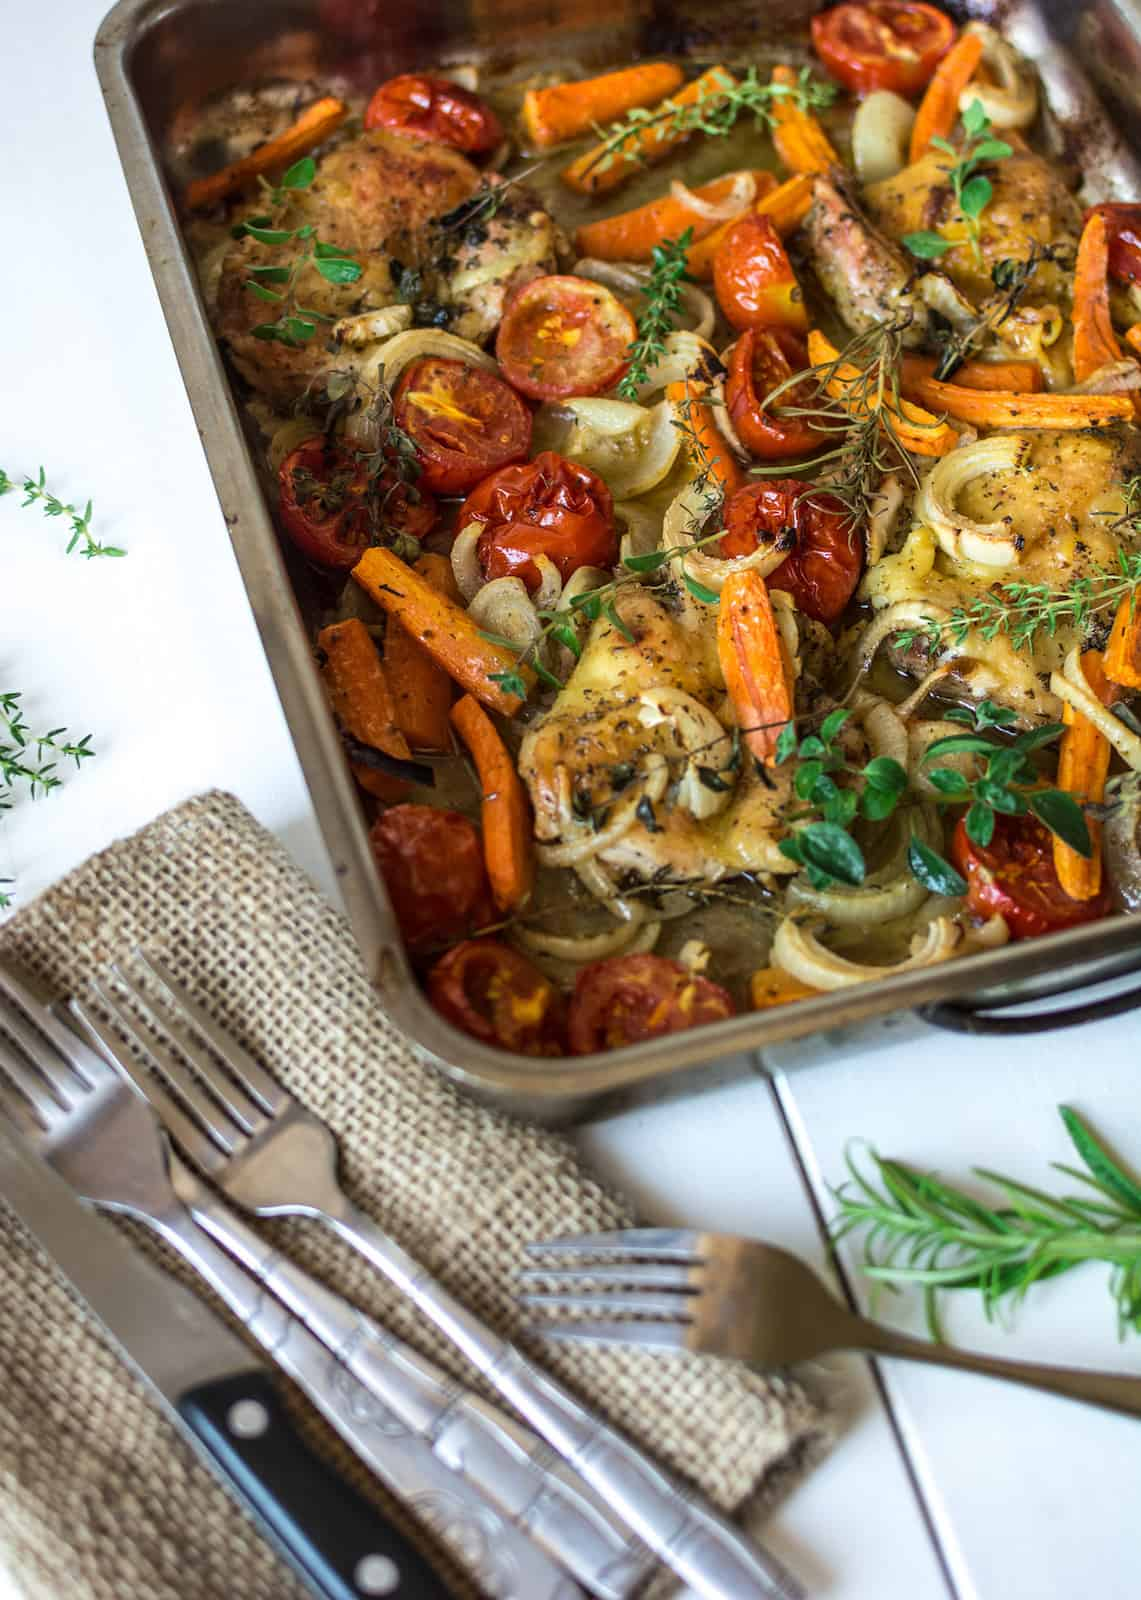 Close up of sheet pan filled with herb roasted chicken and vegetables on a white wooden table next to a napkin with knives and forks on it next to herb sprigs